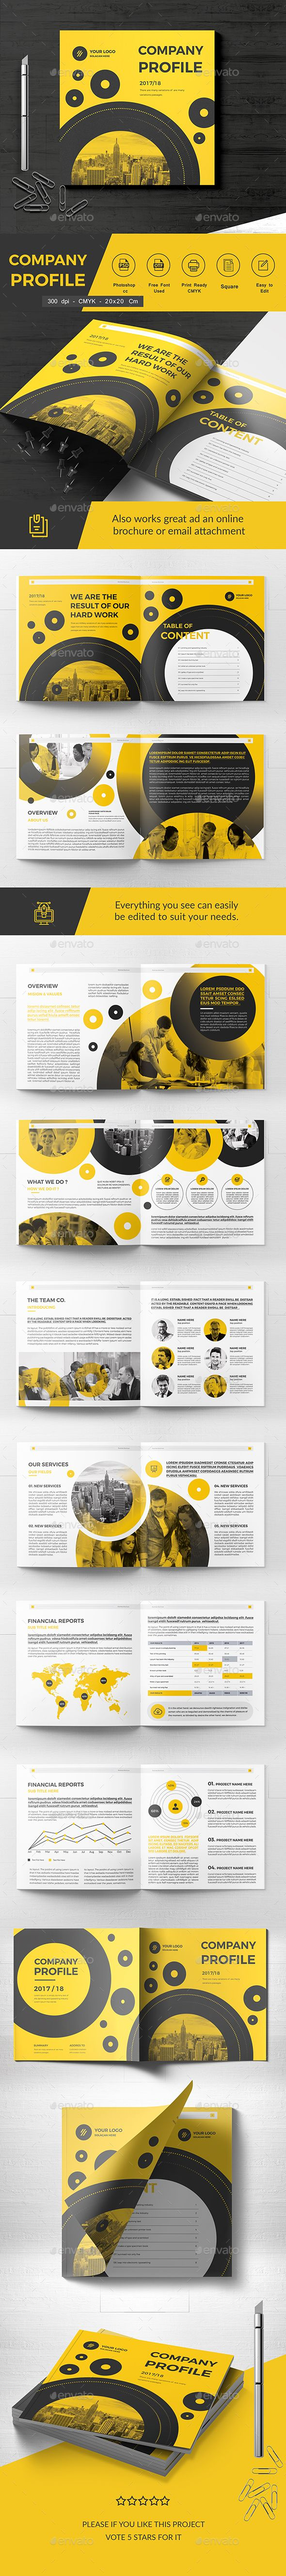 Square Company Brochure 20 Pages — Photoshop PSD #book #clean • Download ➝ https://graphicriver.net/item/square-company-brochure-20-pages/20292813?ref=pxcr